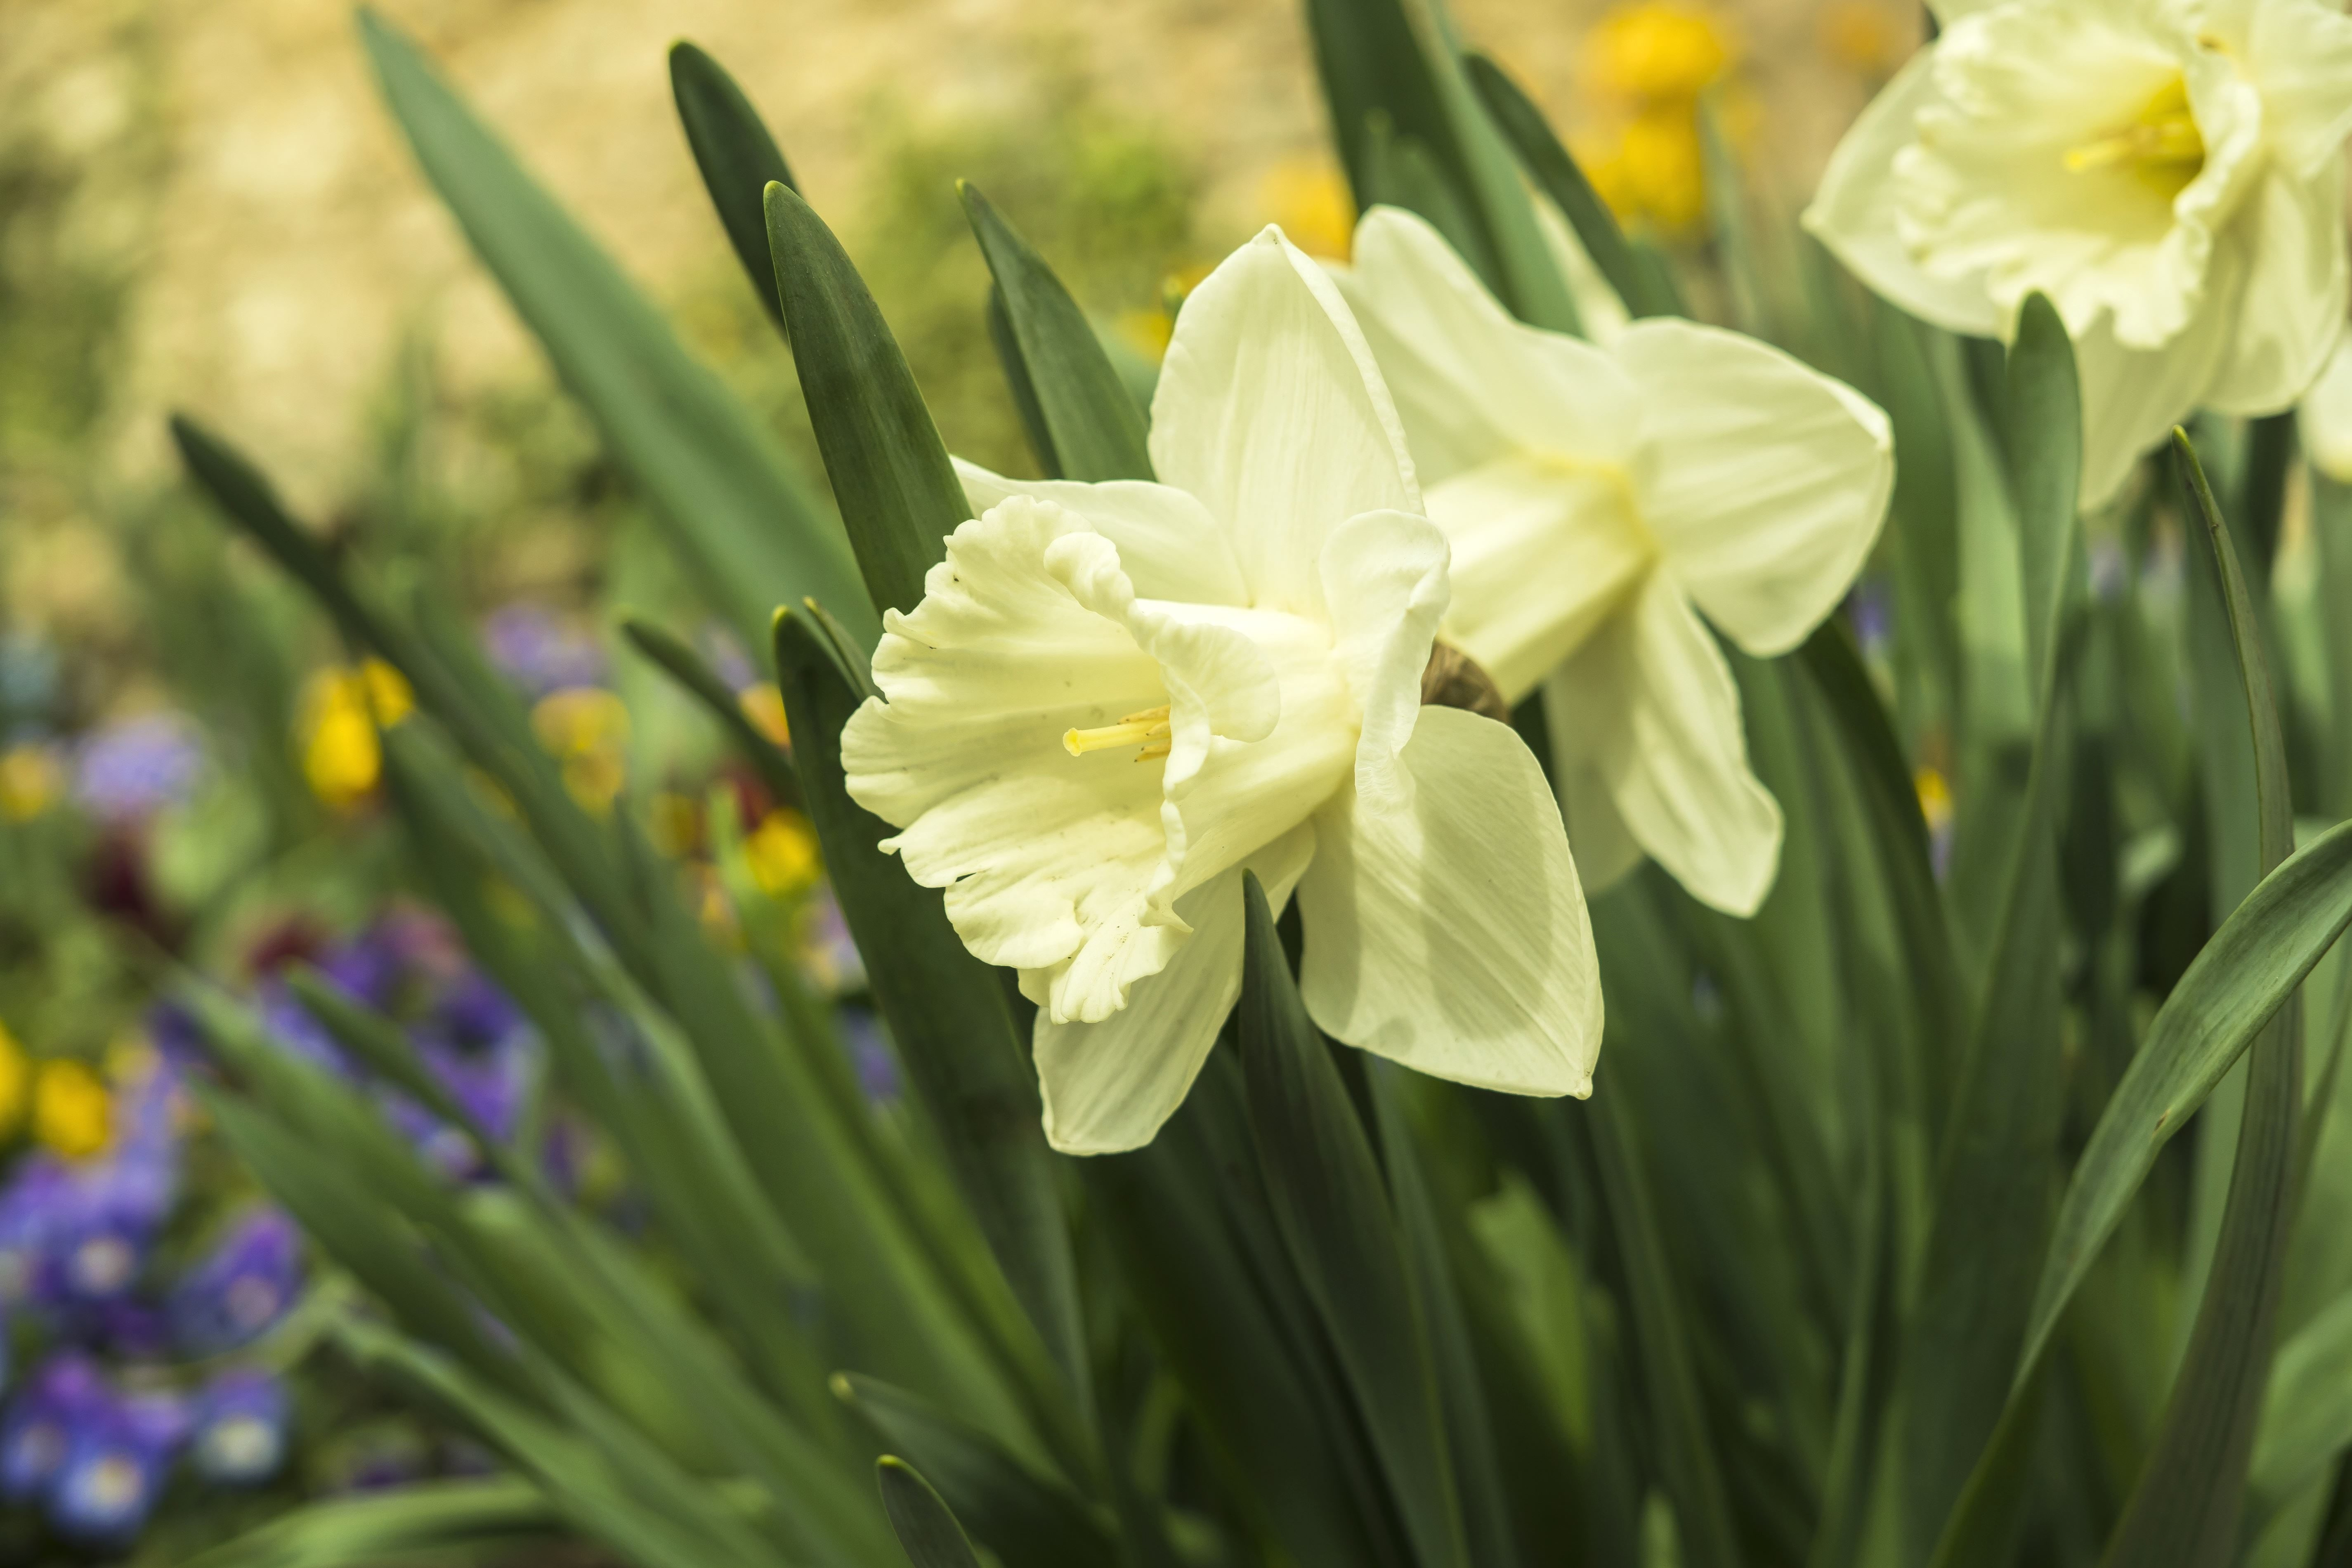 free picture plant flower petals daffodil leaves narcissus